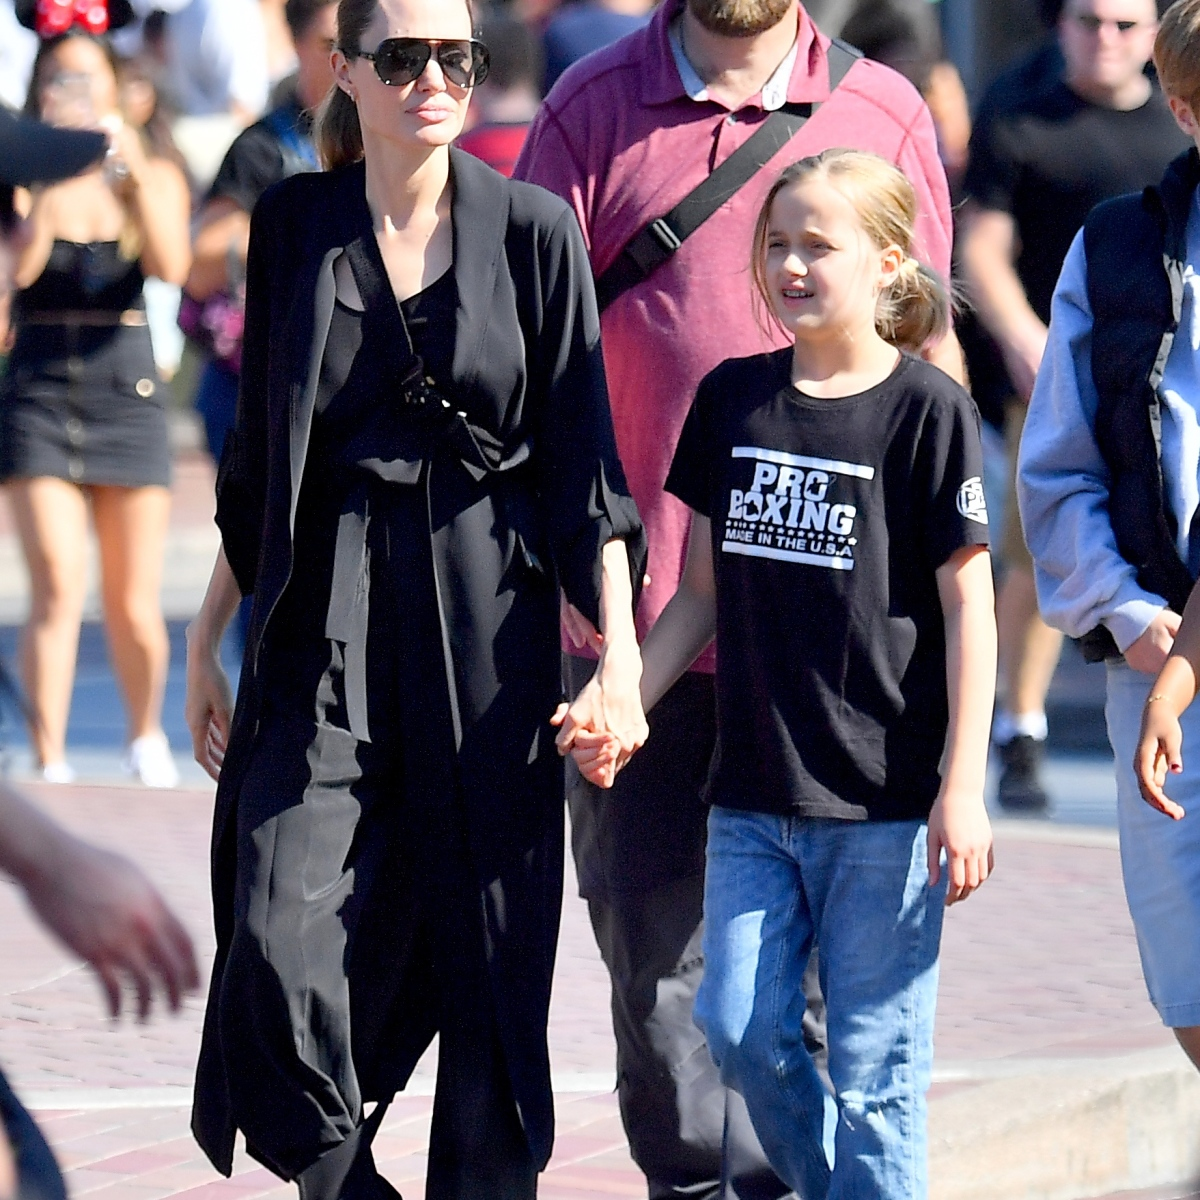 Angelina Jolie Takes Her 4 Youngest Kids to Disneyland After Dropping Maddox Off at College